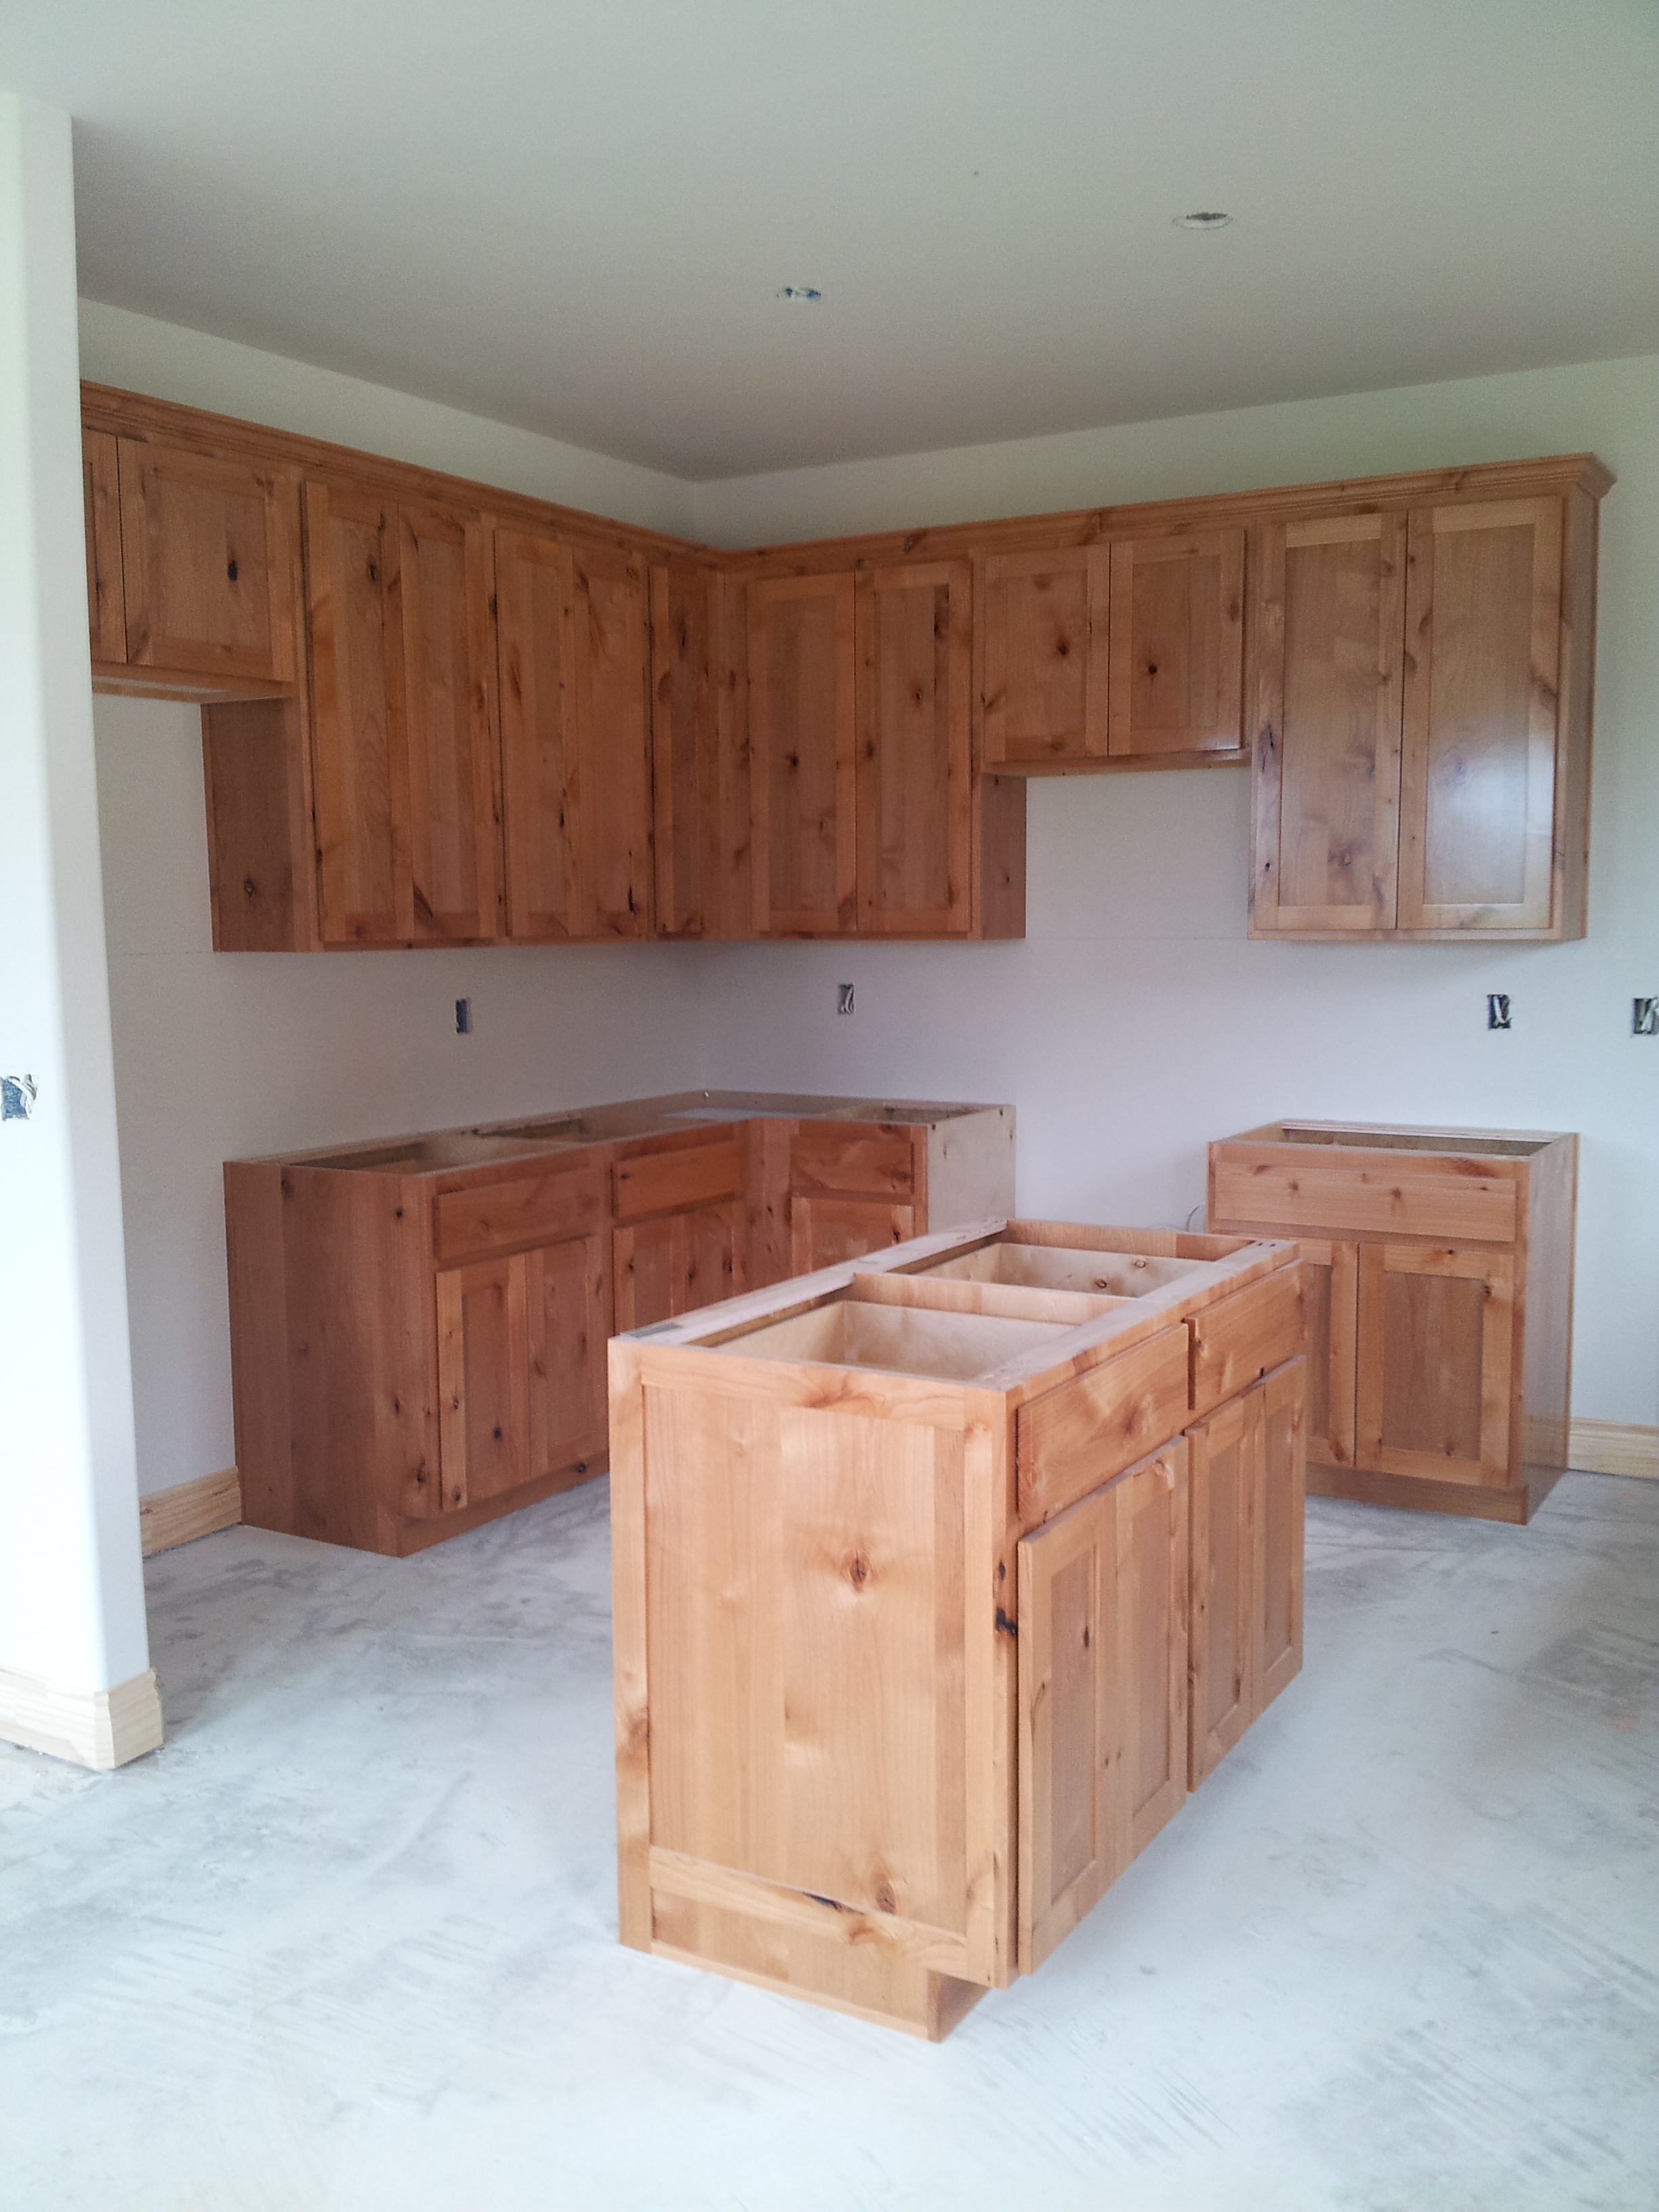 Jaimes custom cabinets austin texas cabinet construction for Austin kitchen cabinets